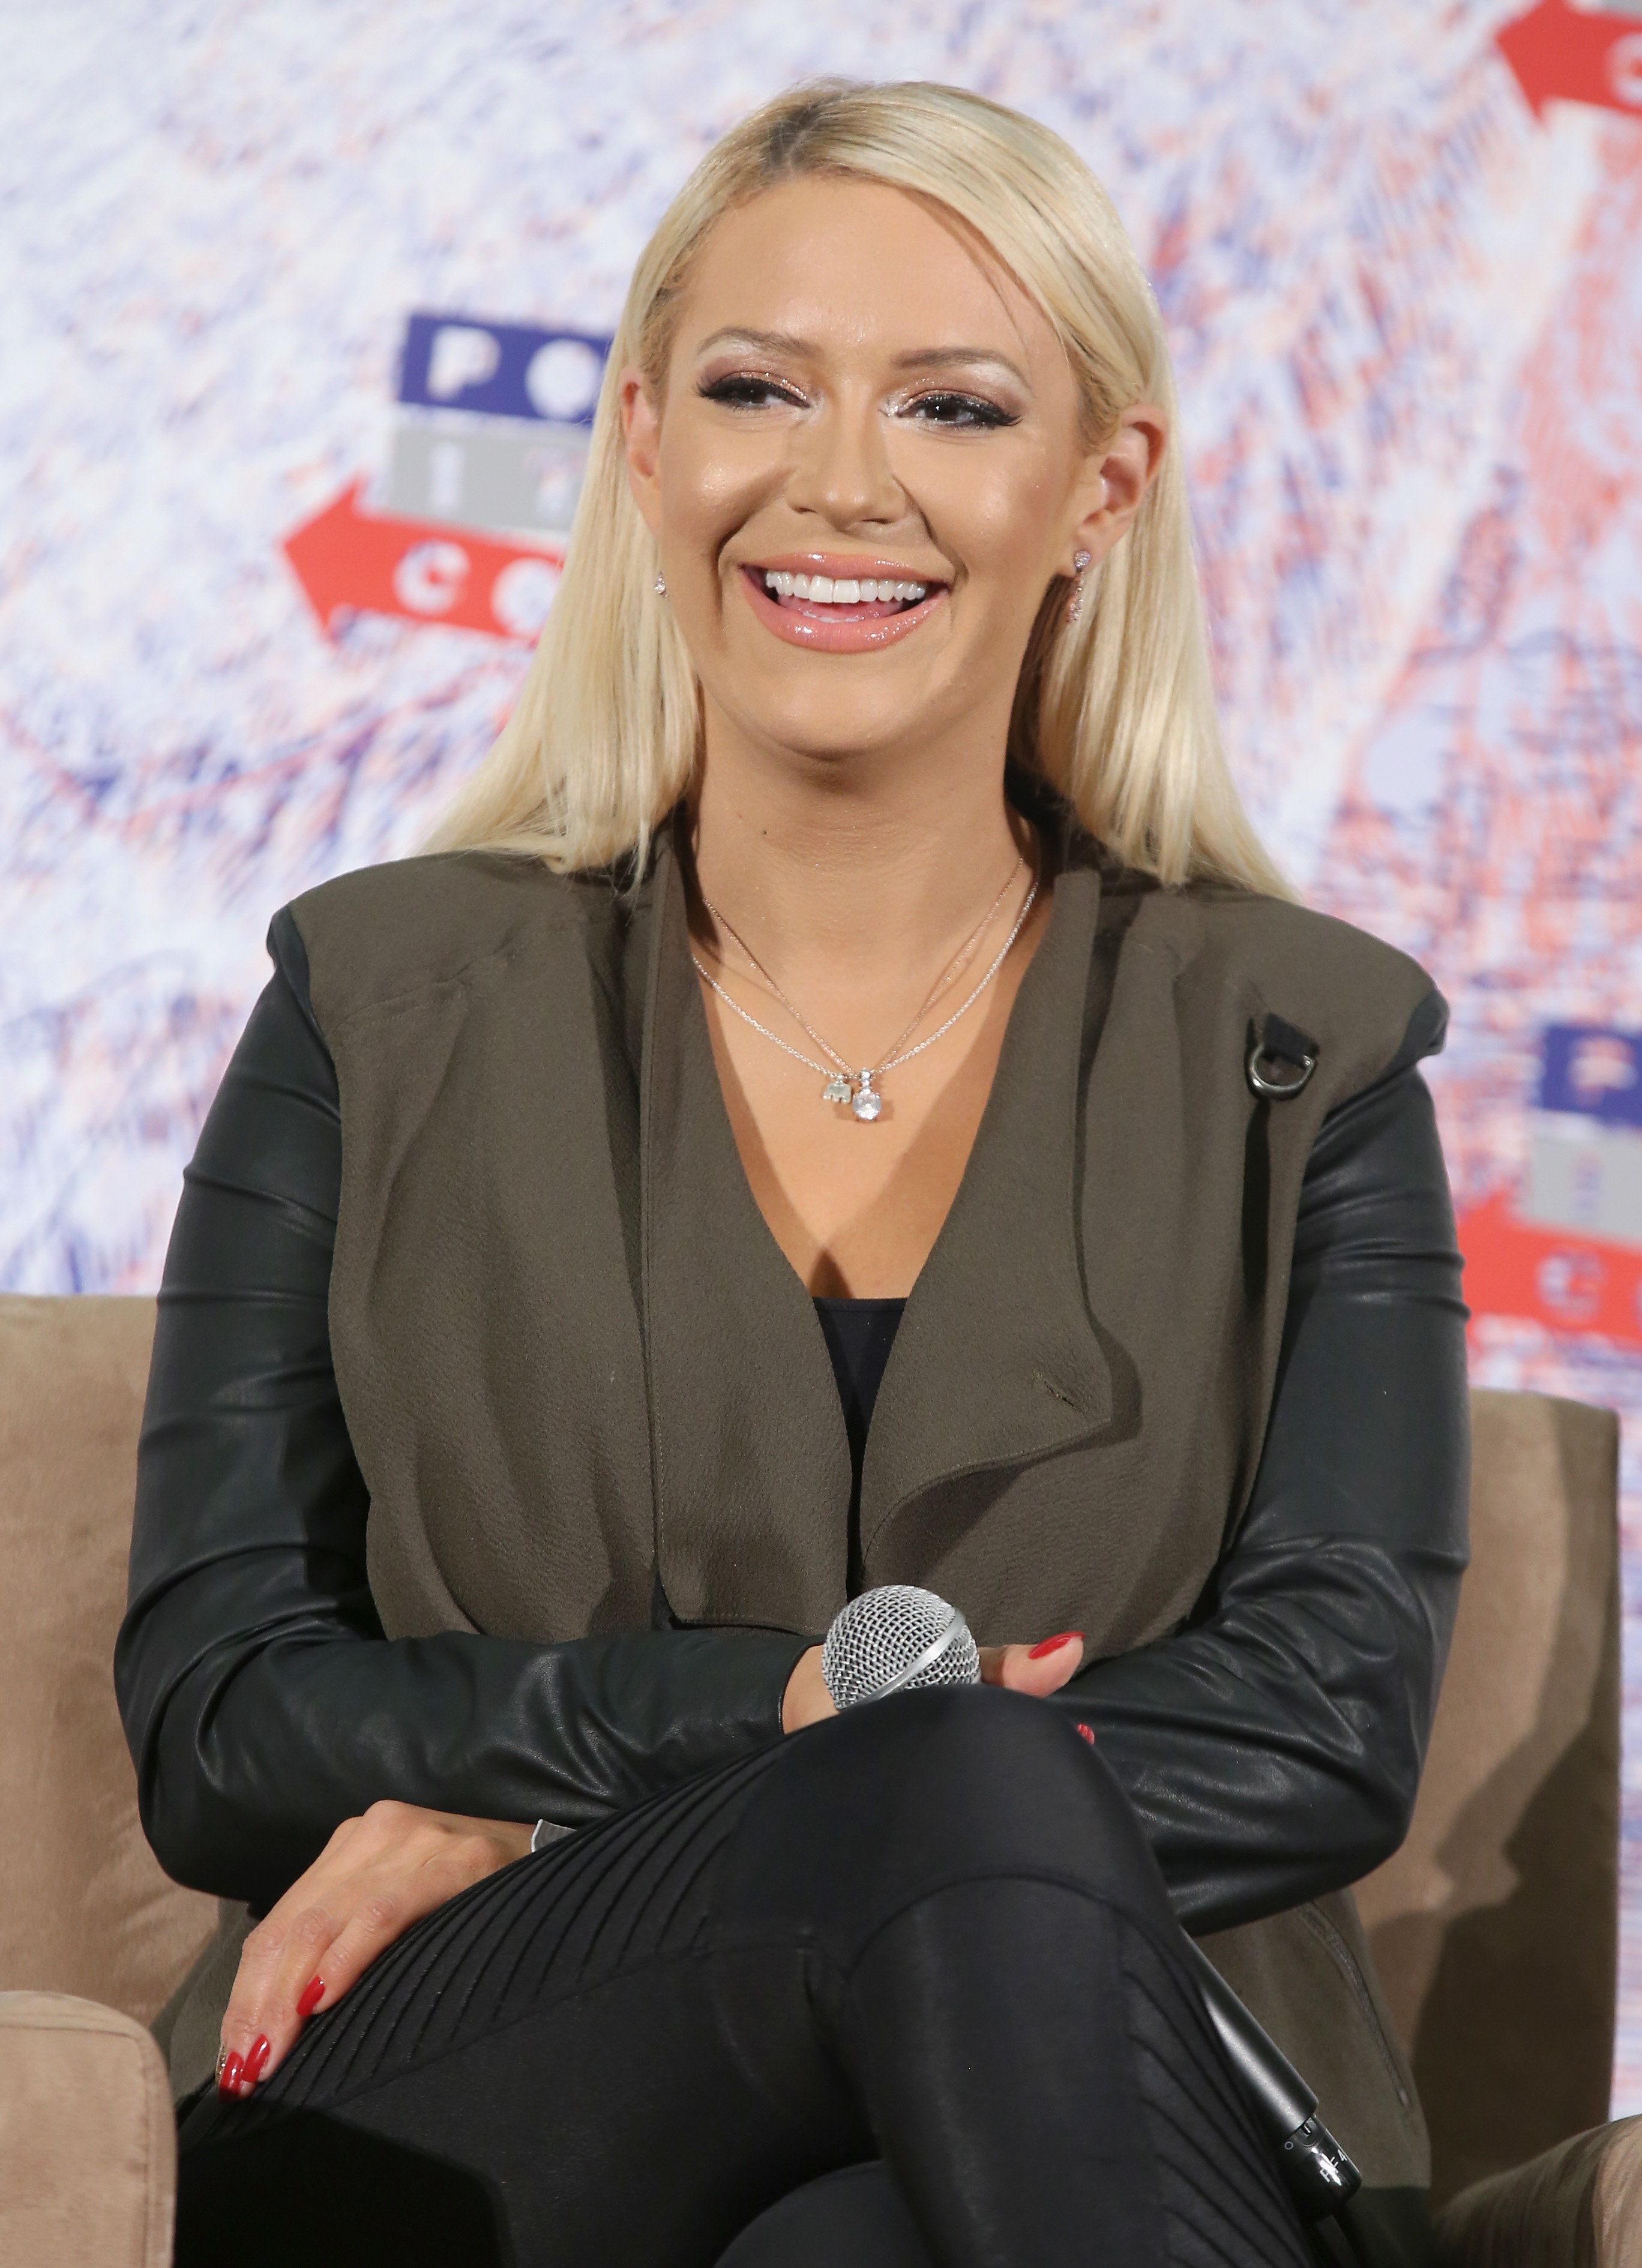 LOS ANGELES, CA - OCTOBER 21:  Kaya Jones speaks onstage during Politicon 2018 at Los Angeles Convention Center on October 21, 2018 in Los Angeles, California.  (Photo by Phillip Faraone/Getty Images for Politicon )